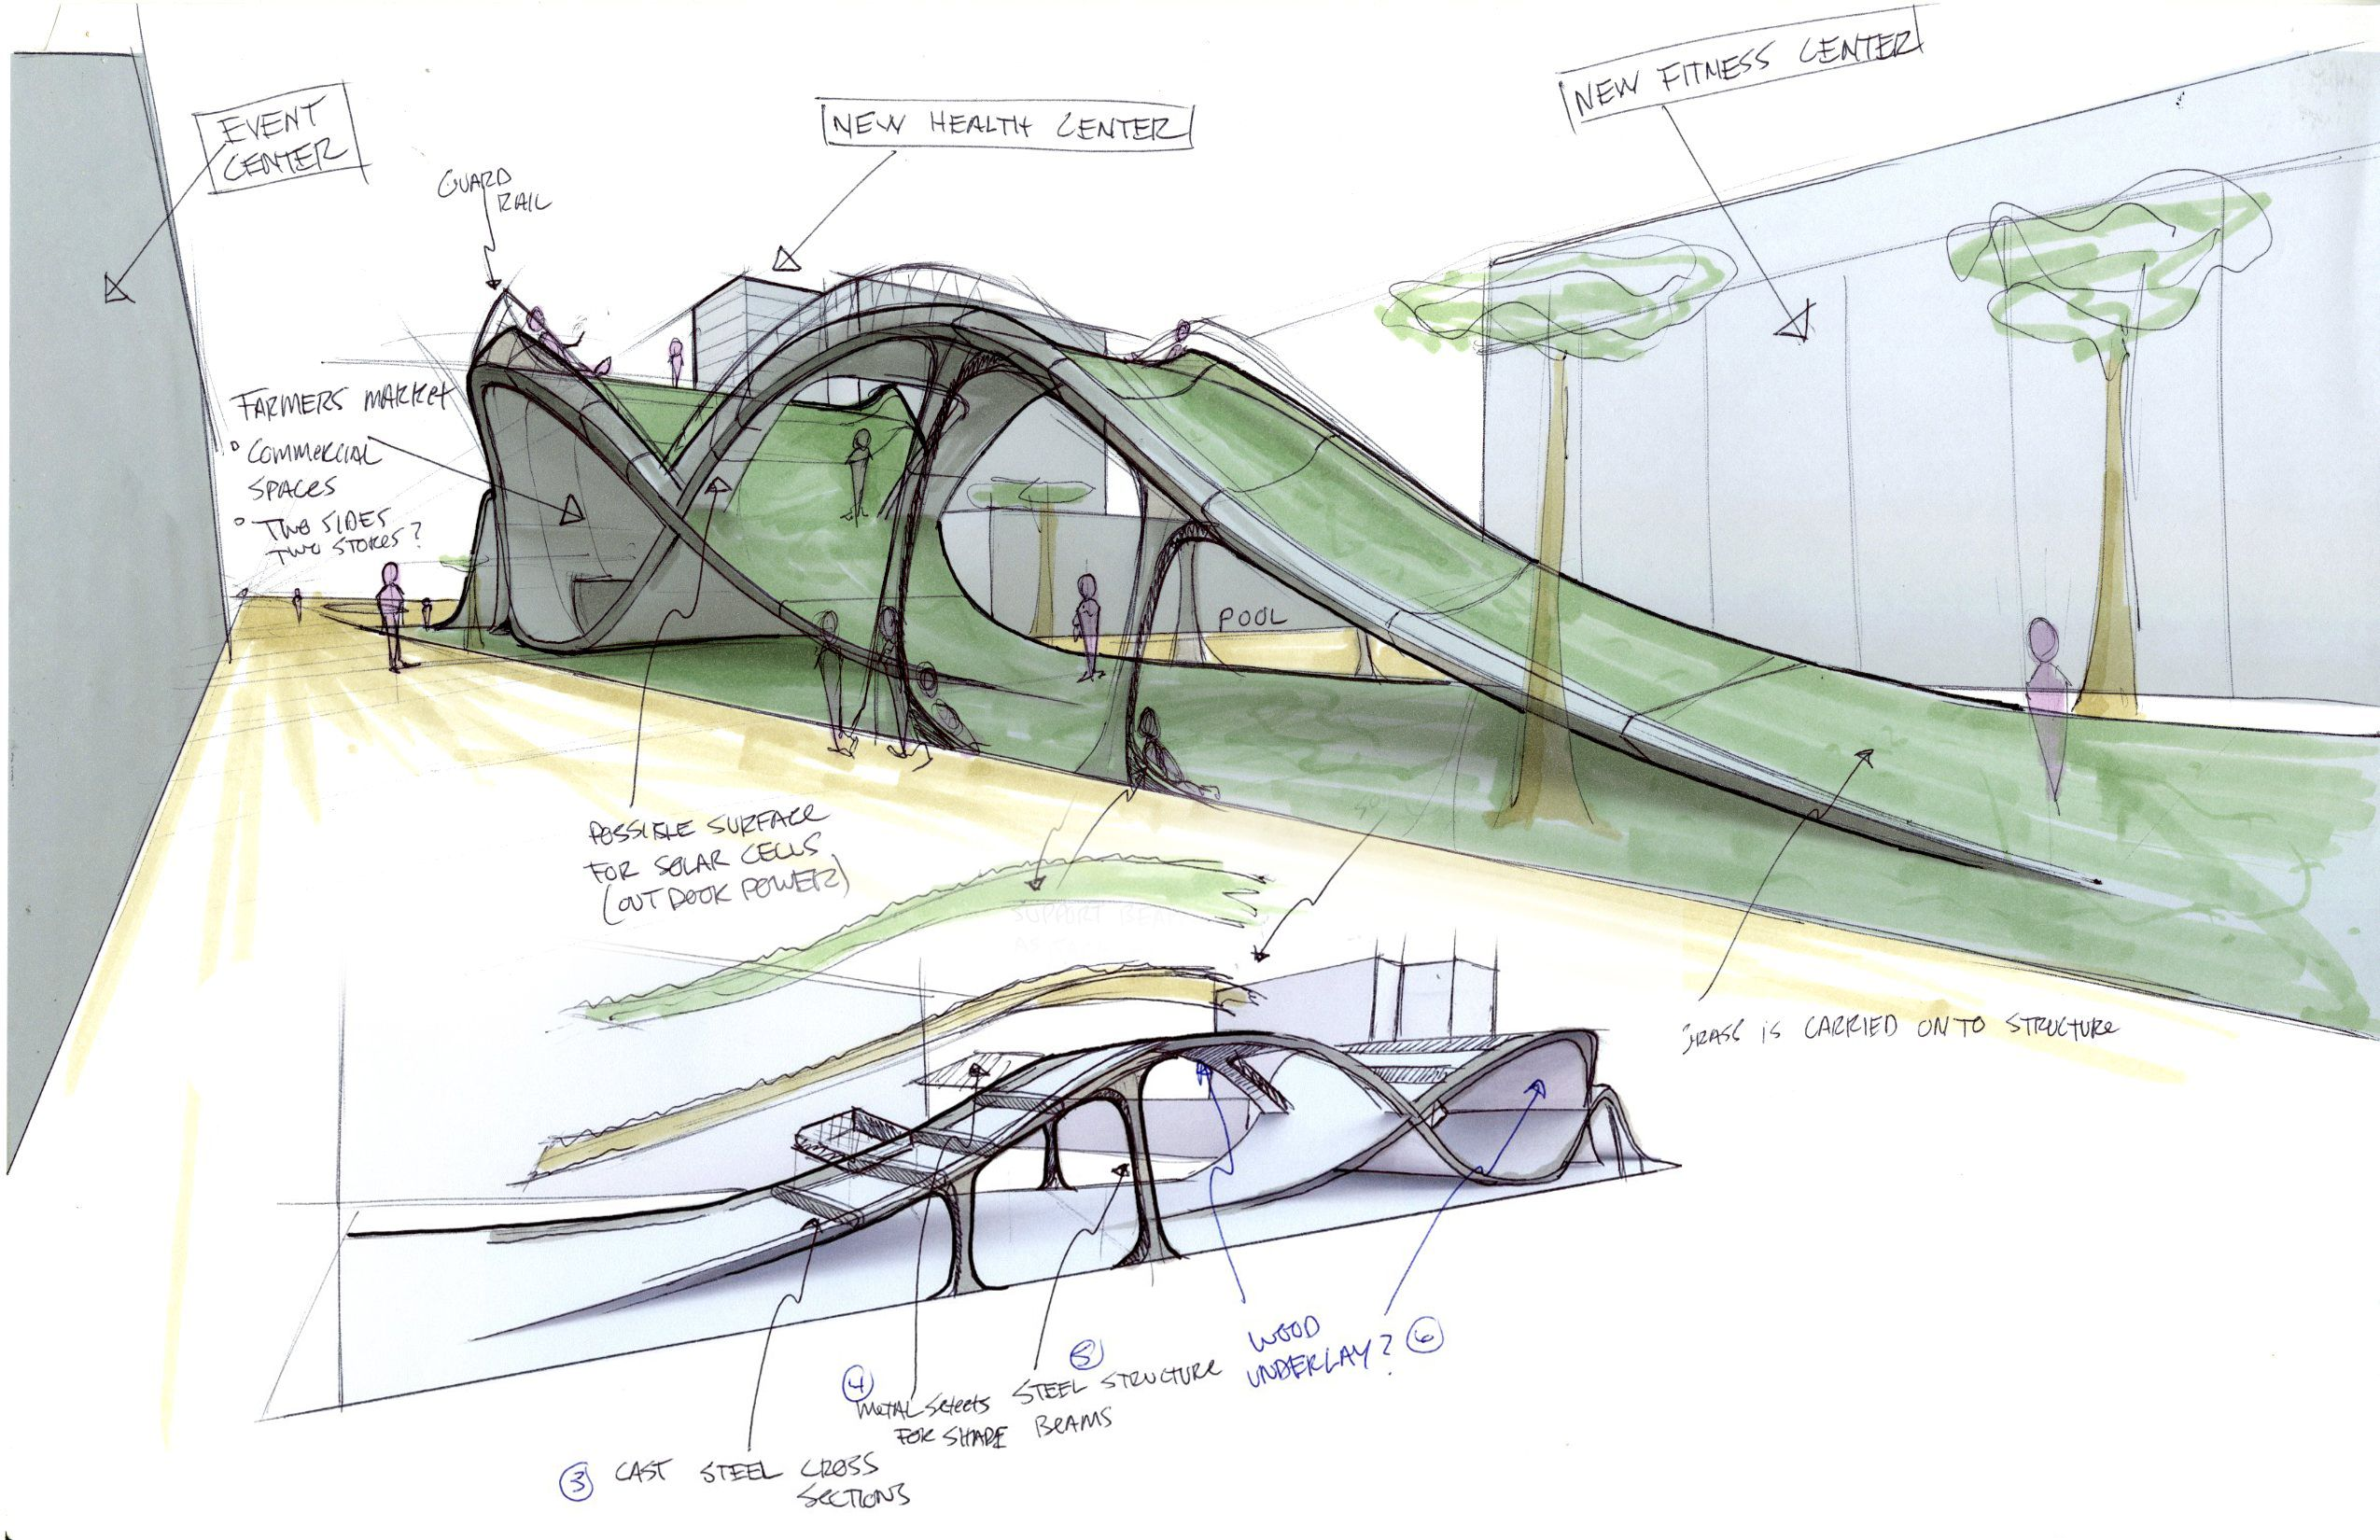 Marvelous Urban Design Concepts Design Model, Sketch Design, Architecture Concept  Diagram, Green Architecture,